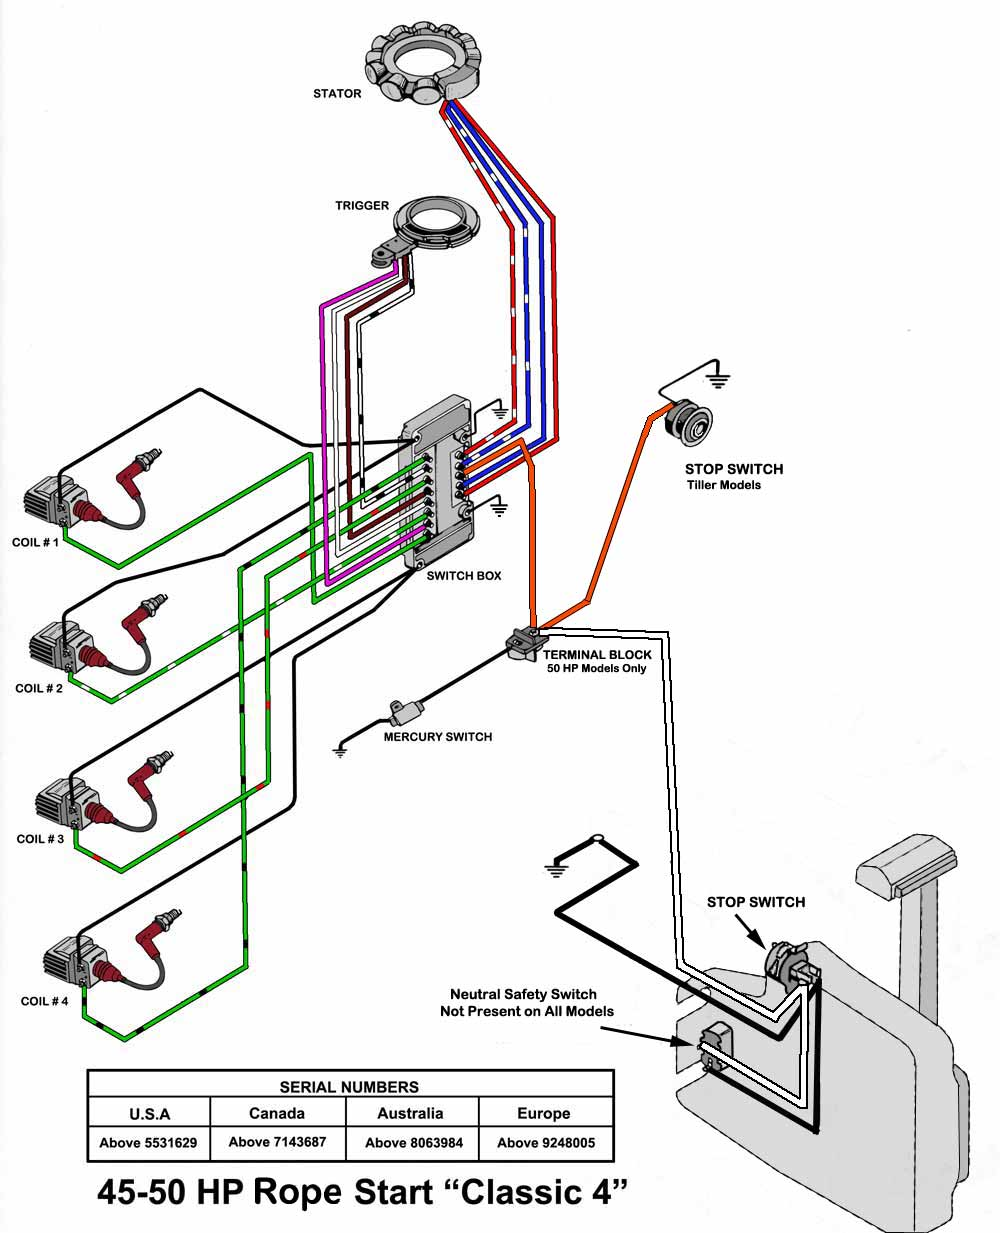 medium resolution of hp mercury outboard 6 cyl wiring diagram wiring diagram blogs rh 7 1 restaurant freinsheimer hof de mercury remote control wiring diagram mercury throttle